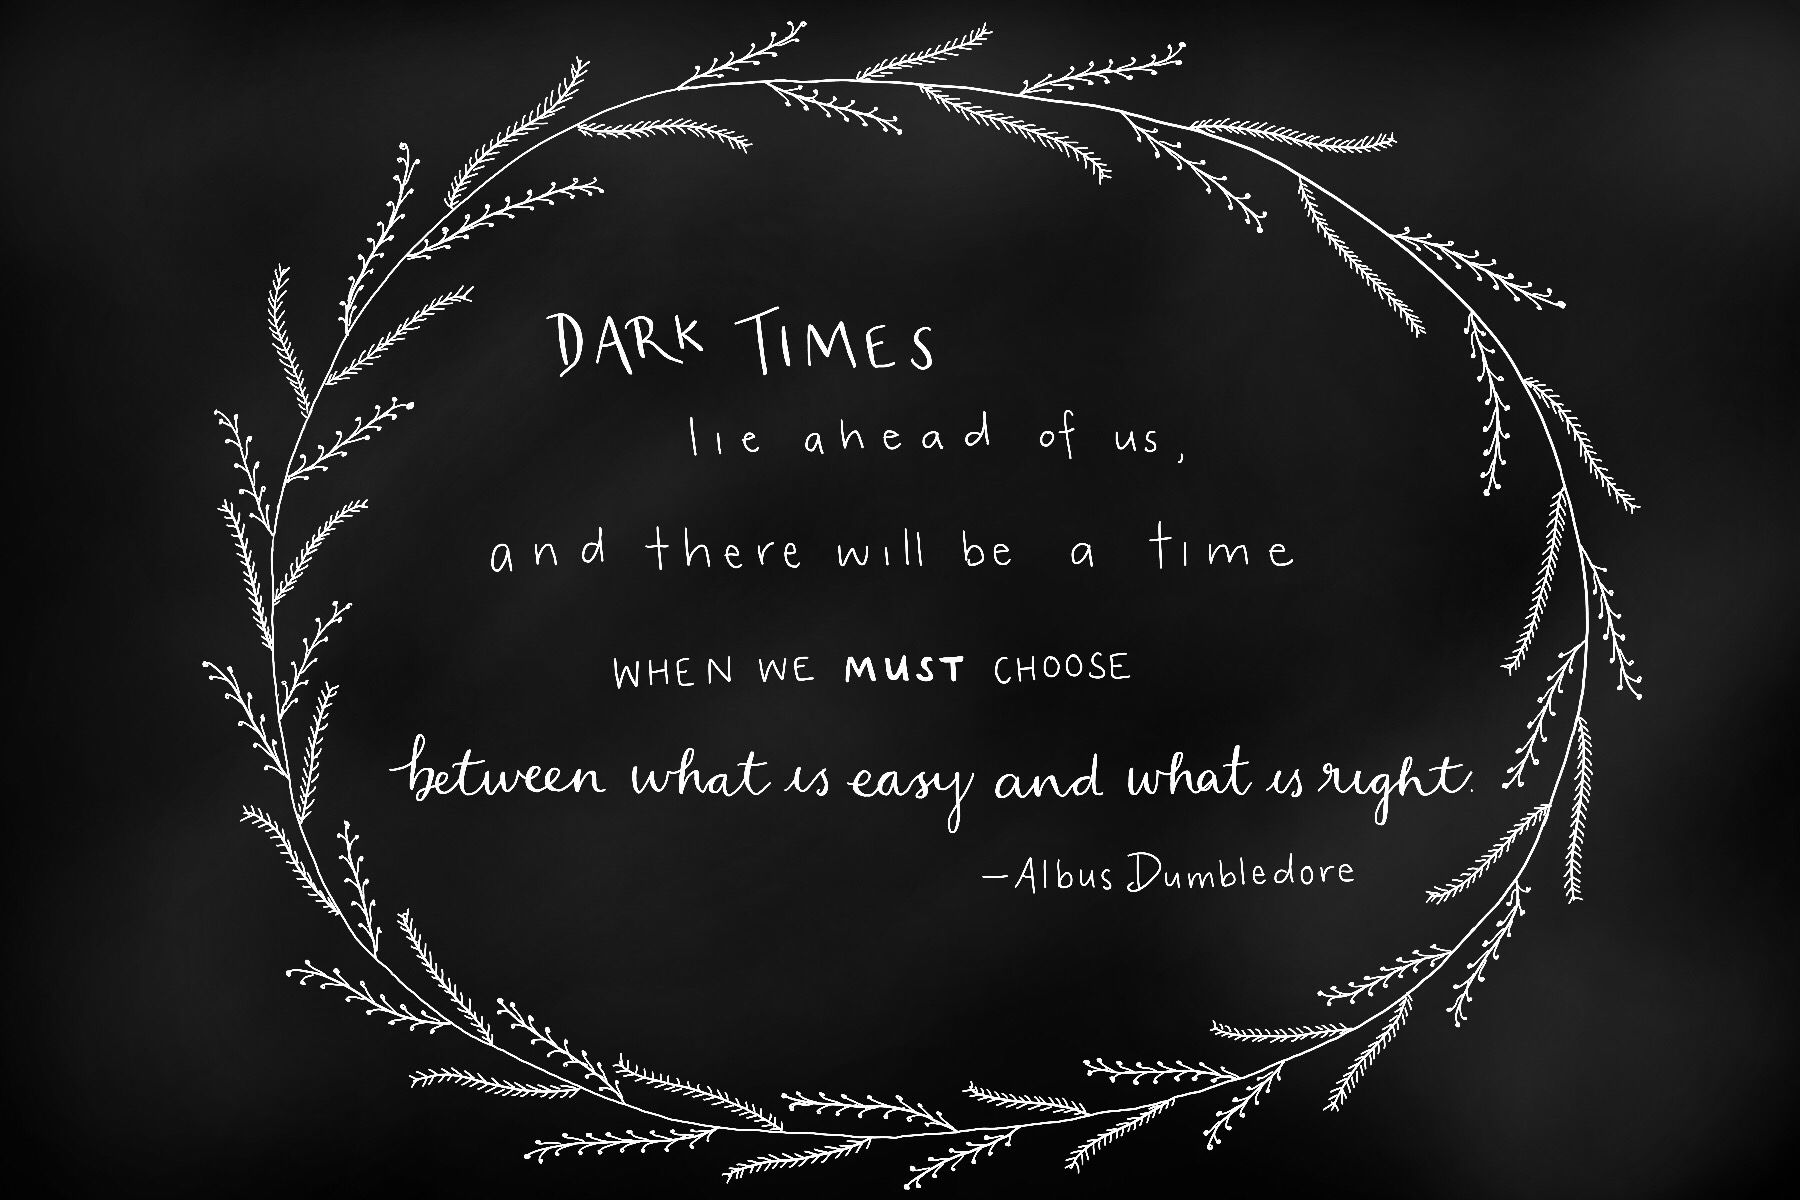 Dark times lie ahead of us, and there must be a time when we must ...